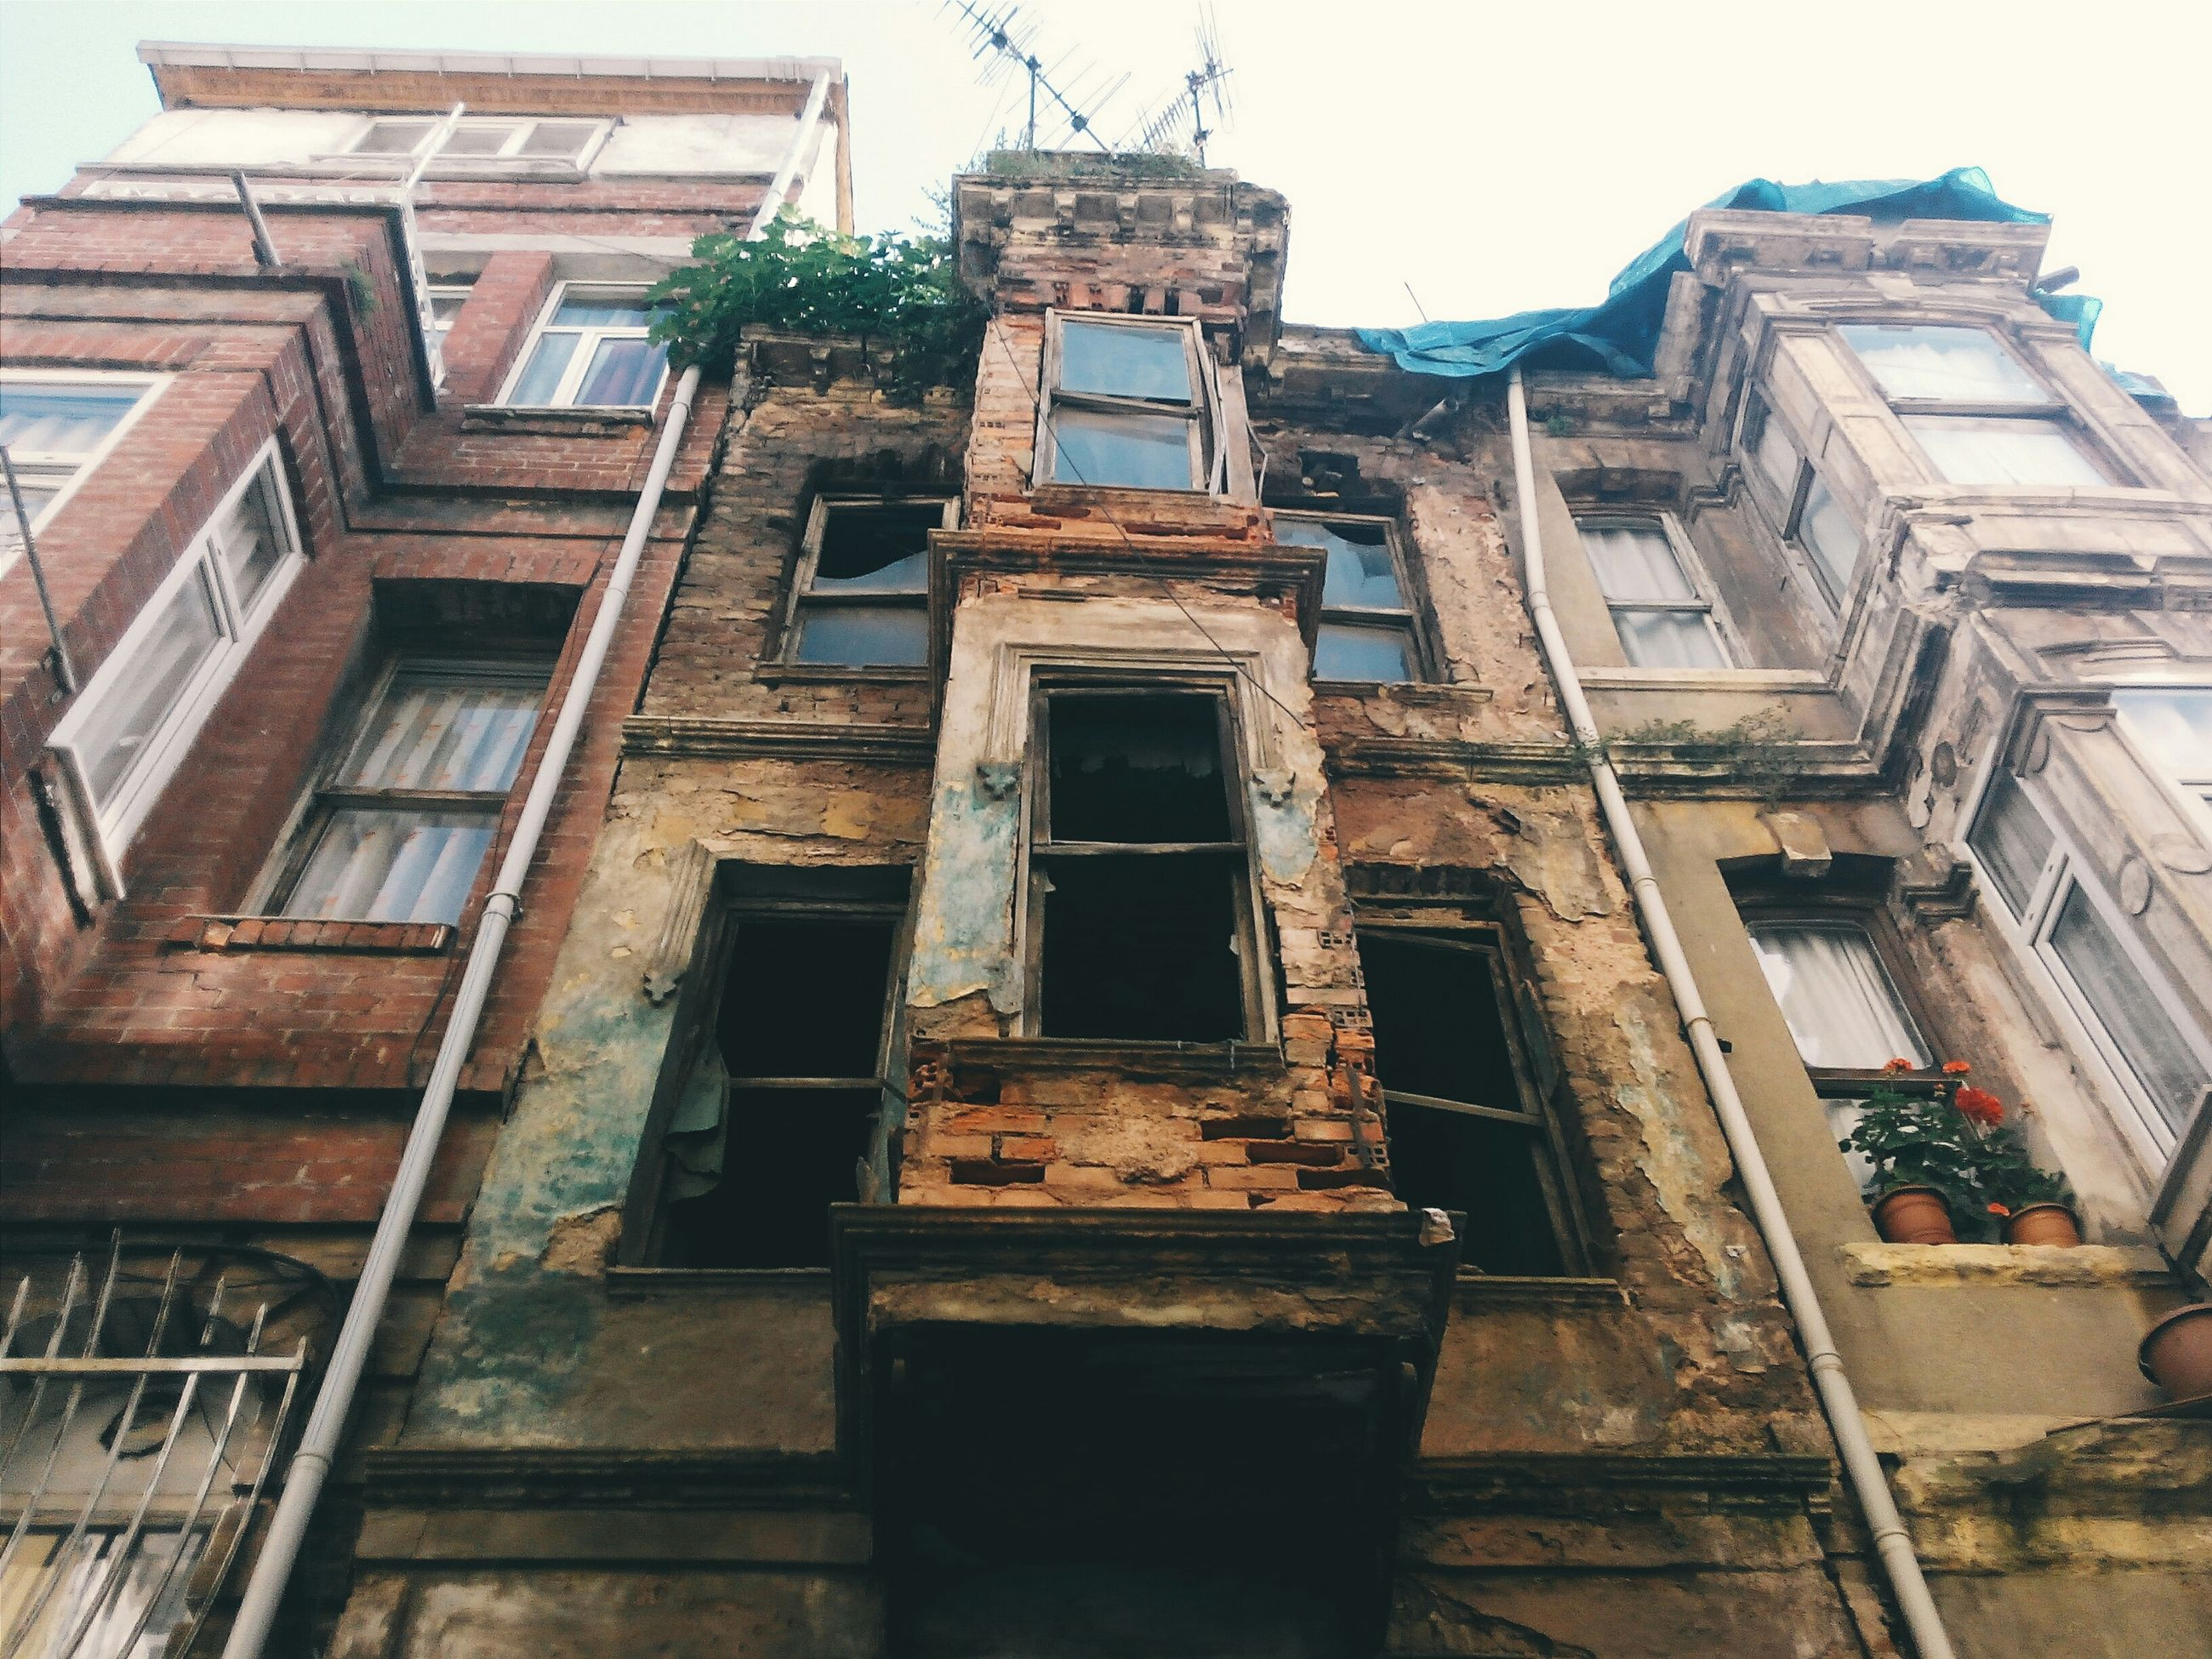 architecture, building exterior, built structure, low angle view, old, damaged, abandoned, obsolete, window, deterioration, building, run-down, weathered, residential building, bad condition, residential structure, ruined, clear sky, house, day